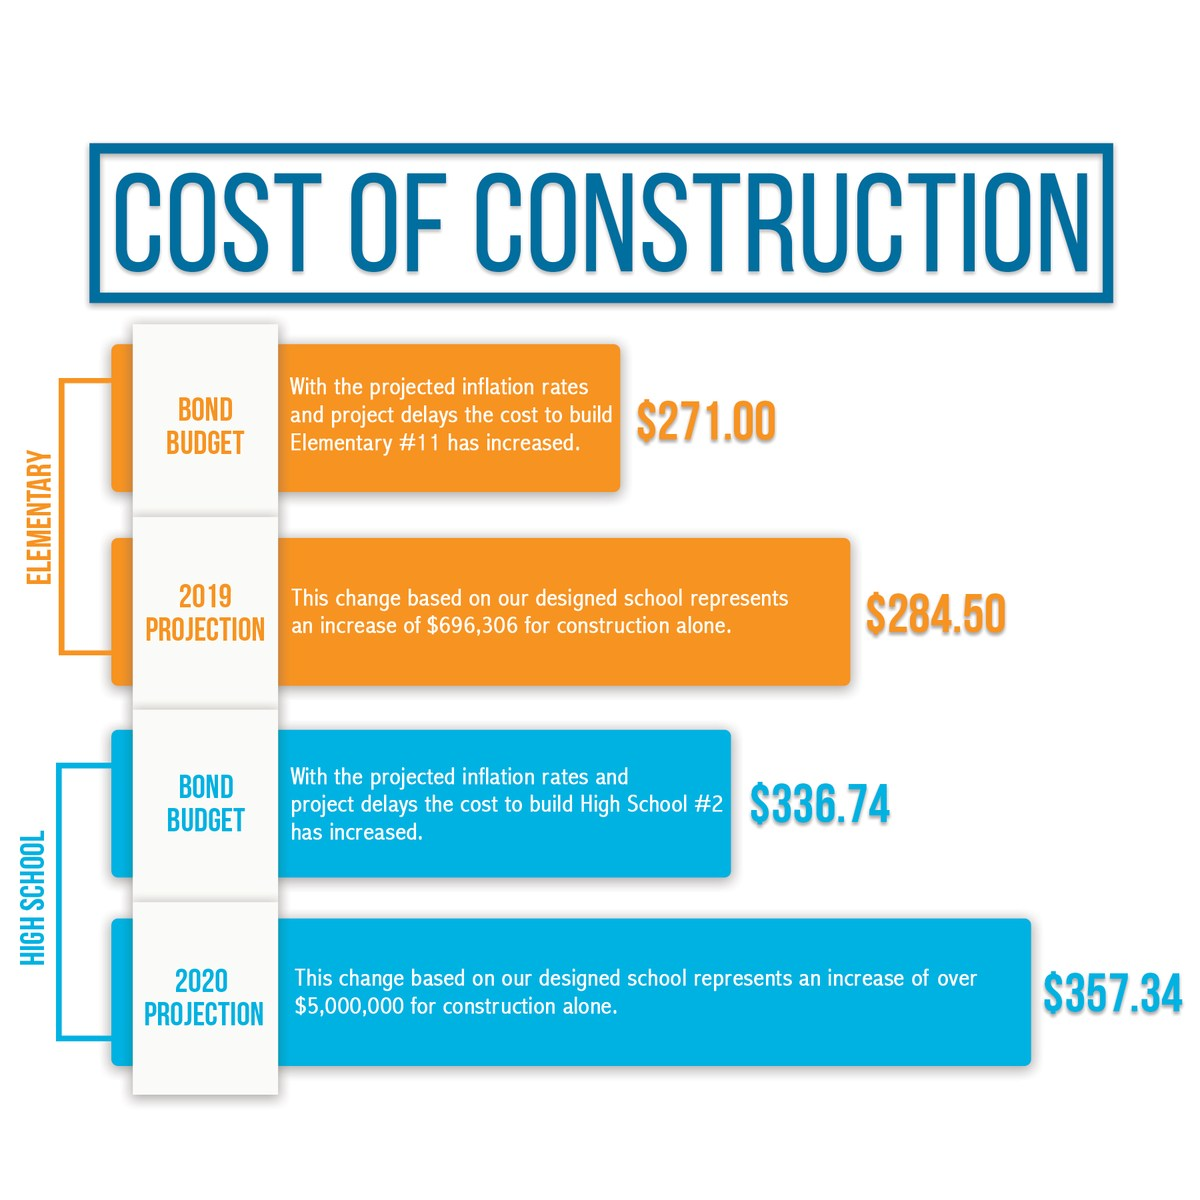 Cost of Construction info for Elementary and High School